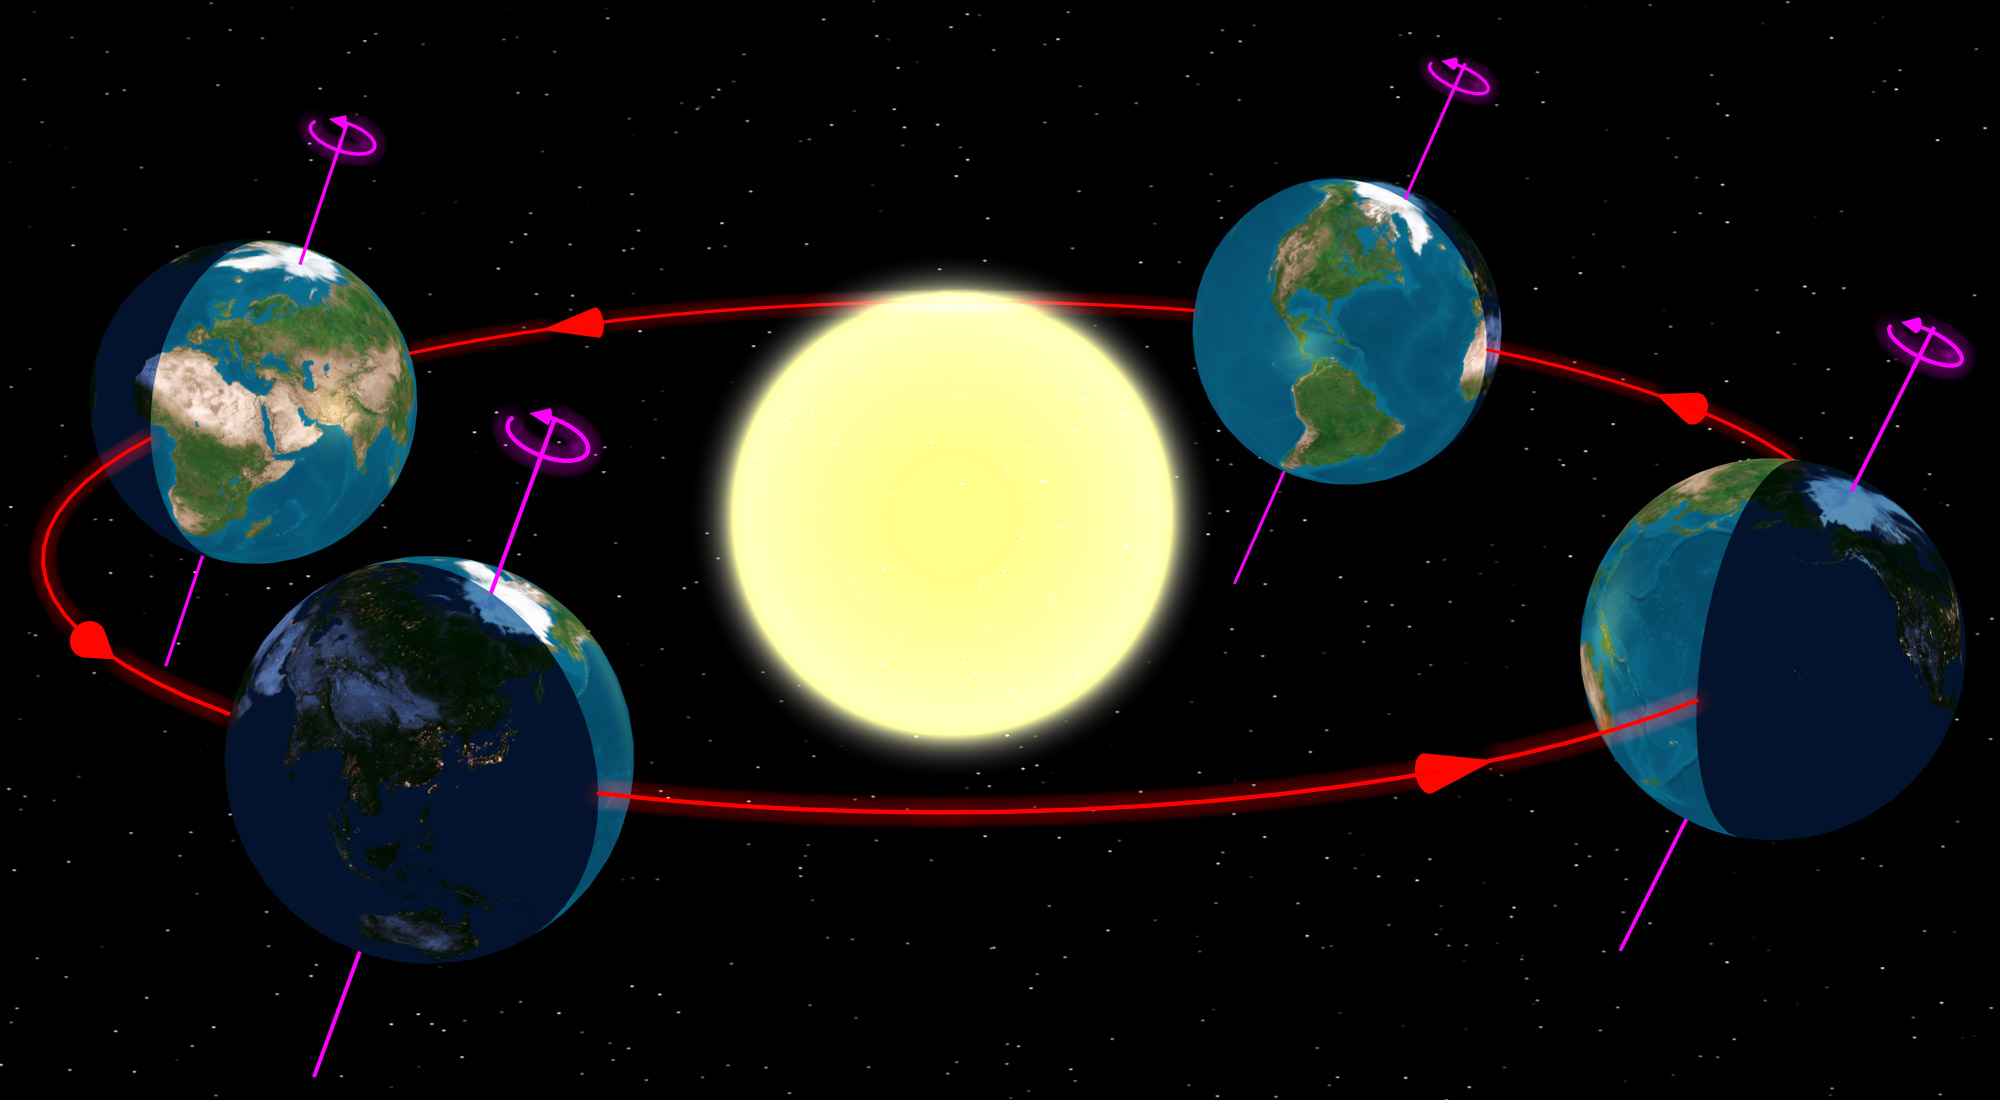 he Earth at the start of the 4 (astronomical) seasons as seen from the north and ignoring the atmosphere (no clouds, no twilight).